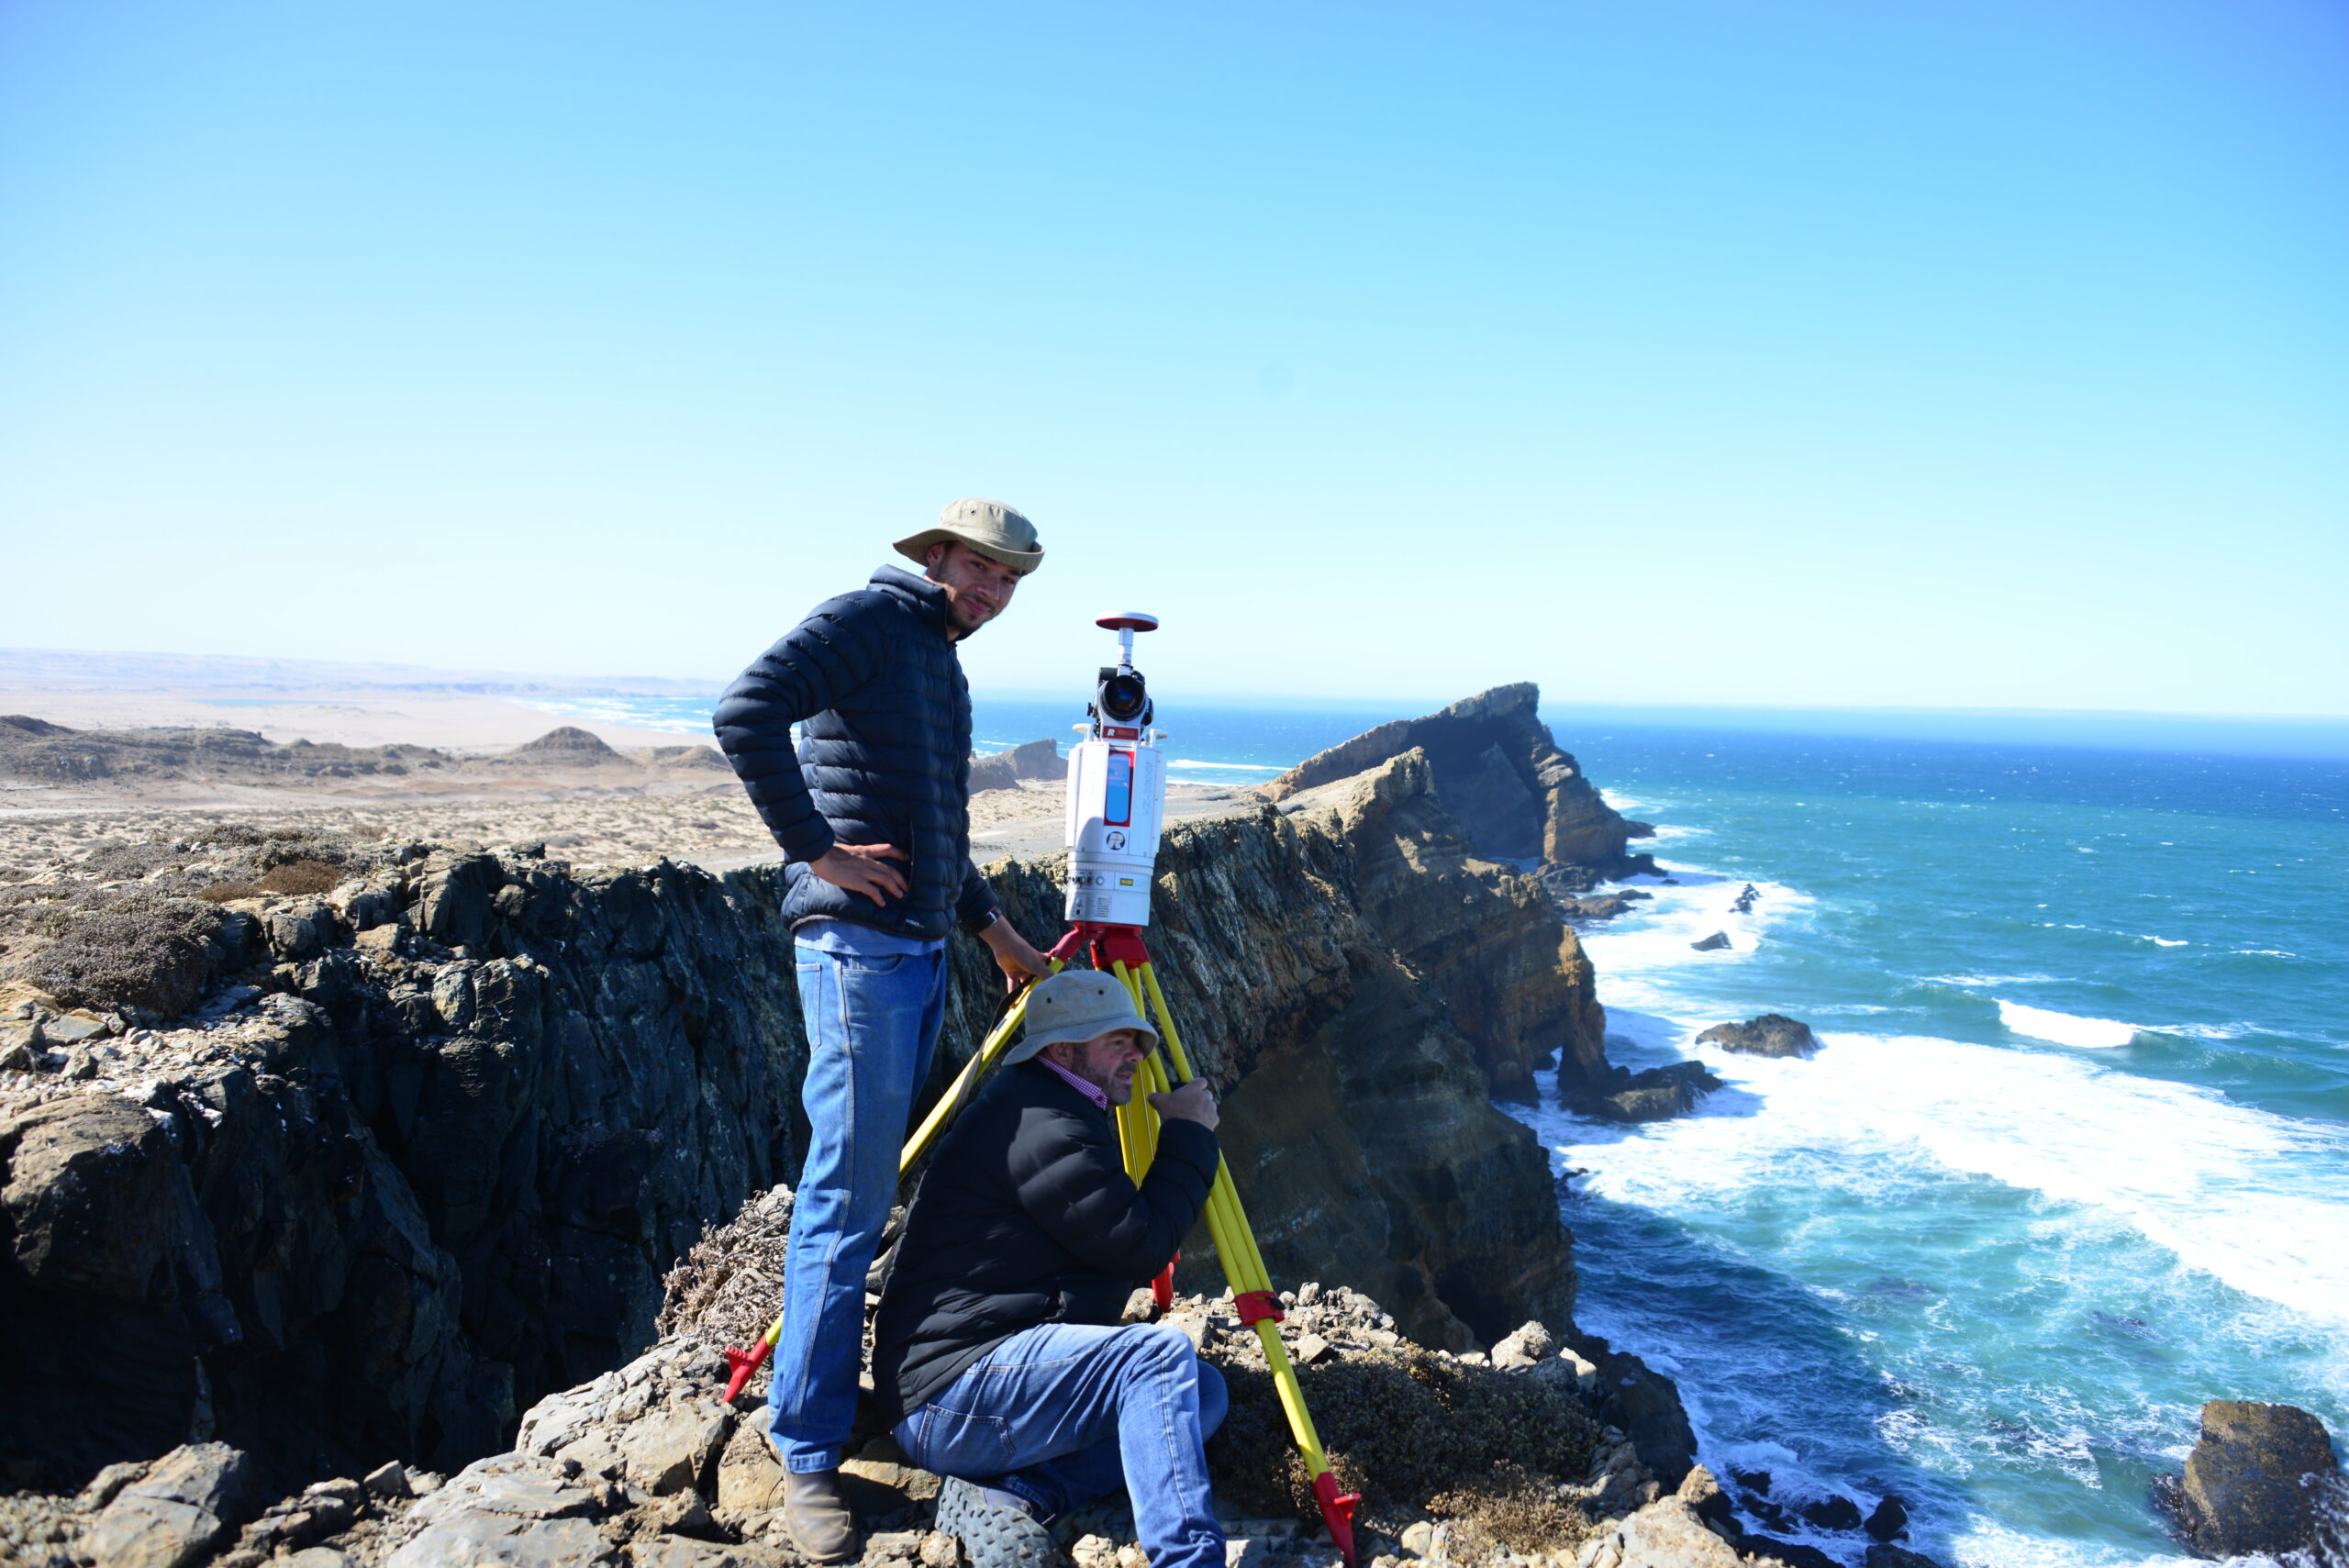 Herman Strydom and associate Guillaume van der Walt take a break and look out over the southern Atlantic Ocean with the RIEGL VZ-2000i on the remote Namibia coast. The remains are a part of Pomona, once a thriving diamond mining town in the African Sperrgebiet.